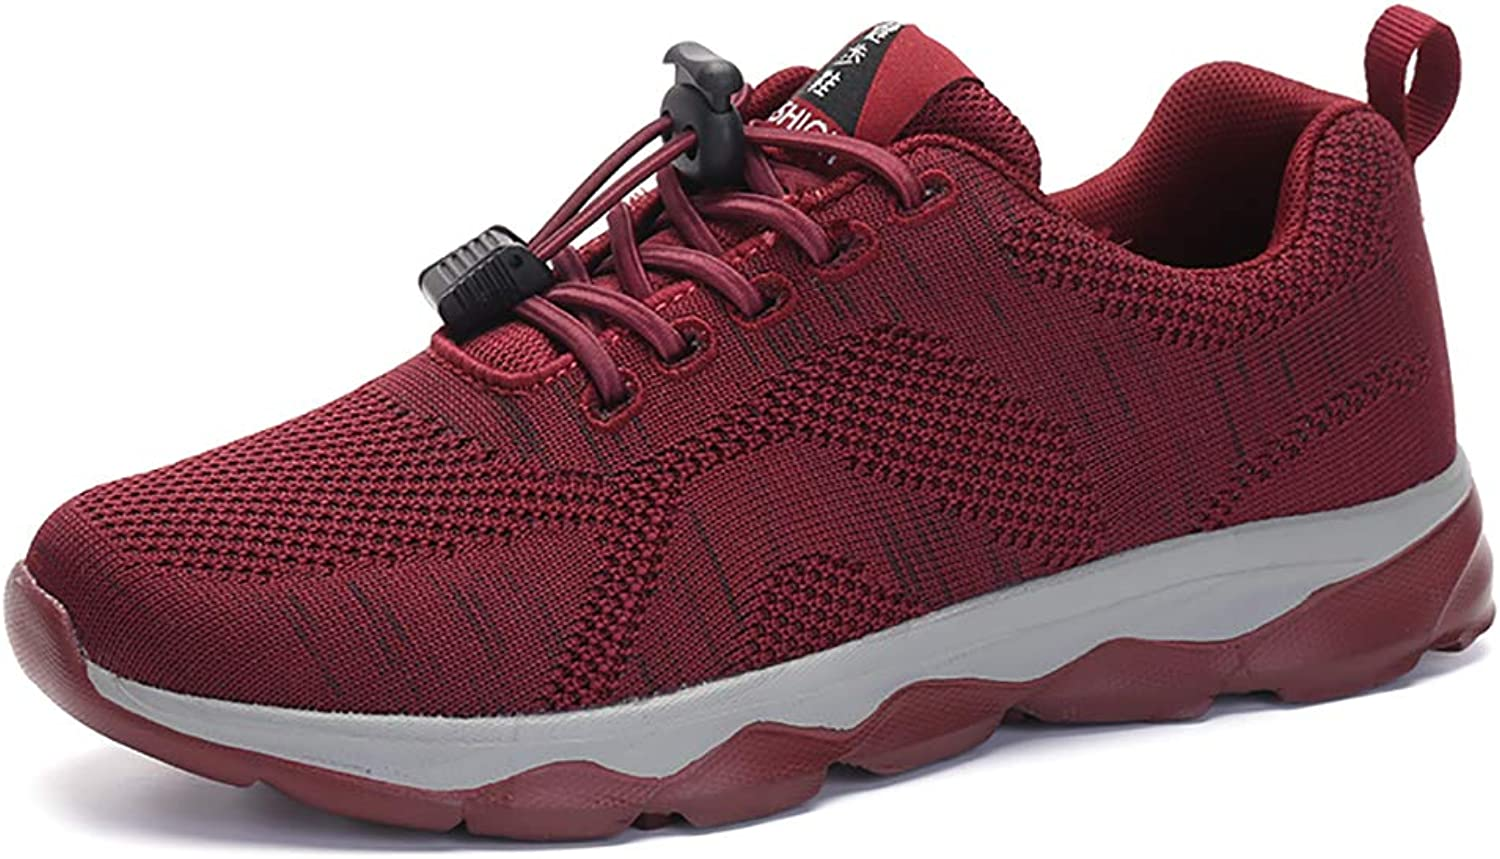 Orktree Women's Sneakers Breathable Running shoes Casual Fashion Lightweight Sports Walking shoes